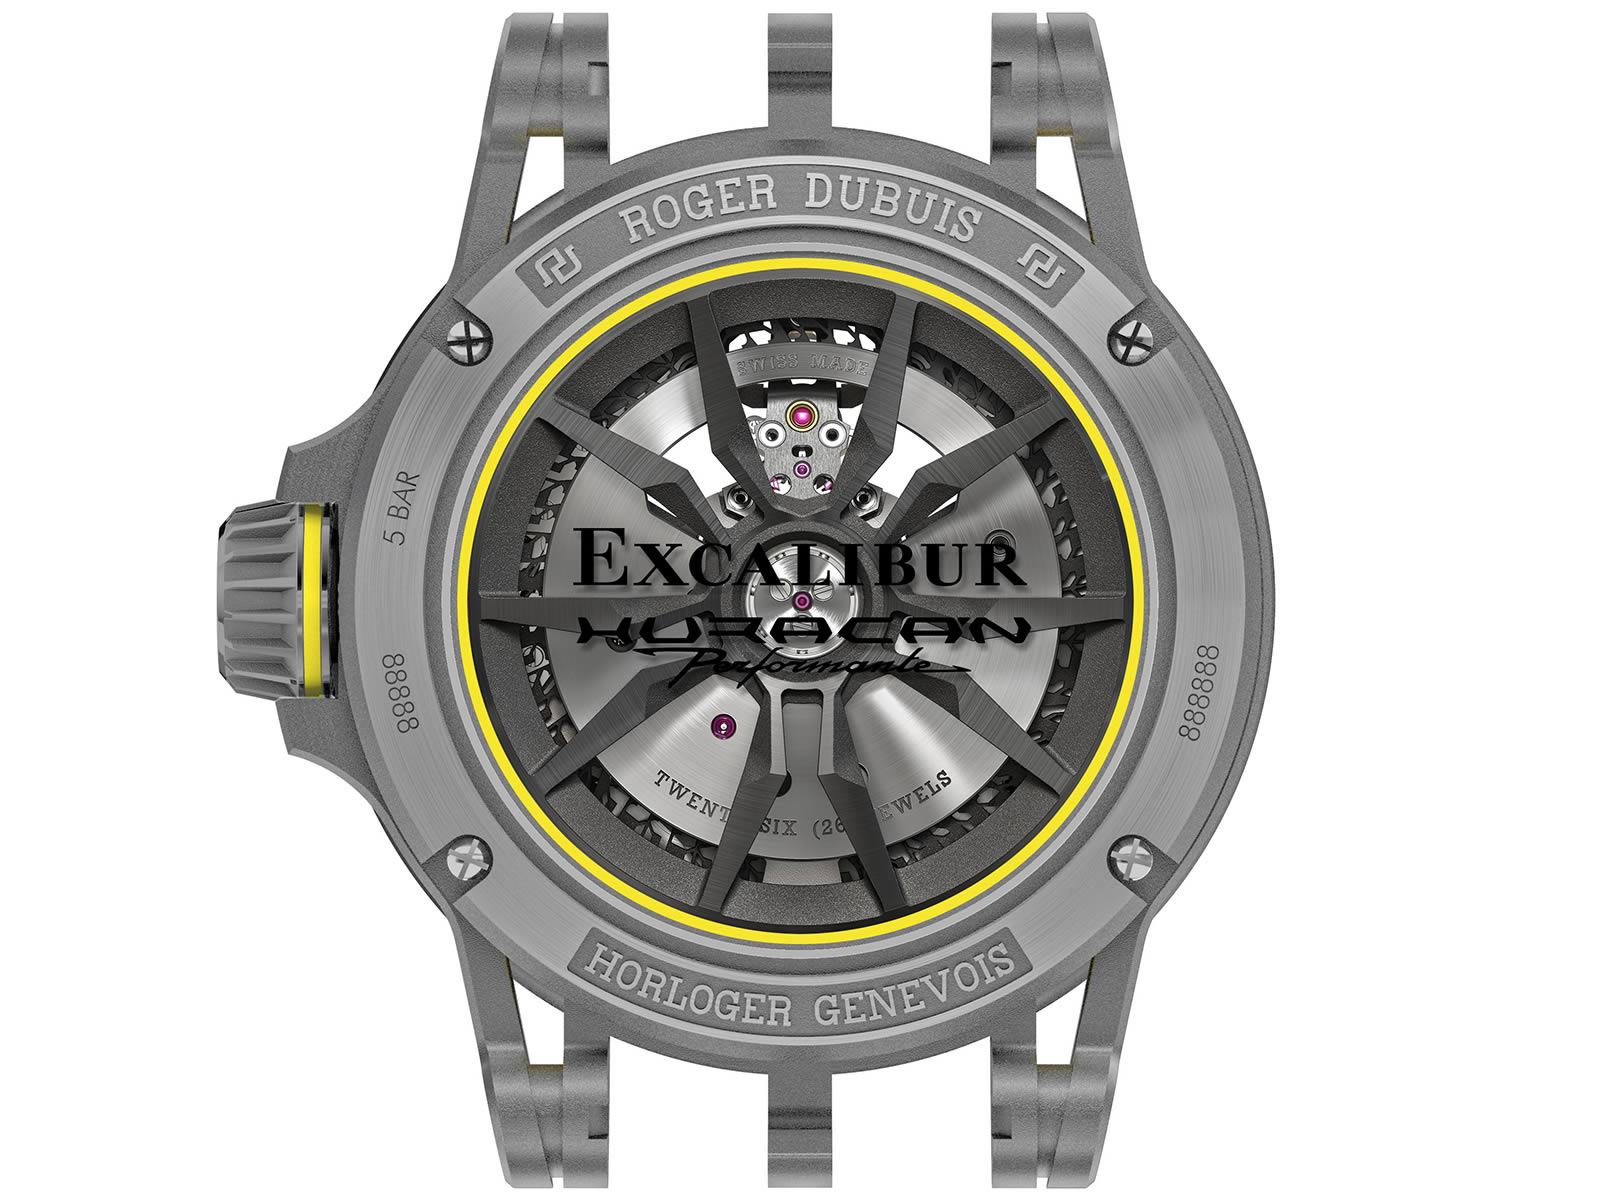 rddbex0792-roger-dubuis-excalibur-huracan-performante-21-.jpg